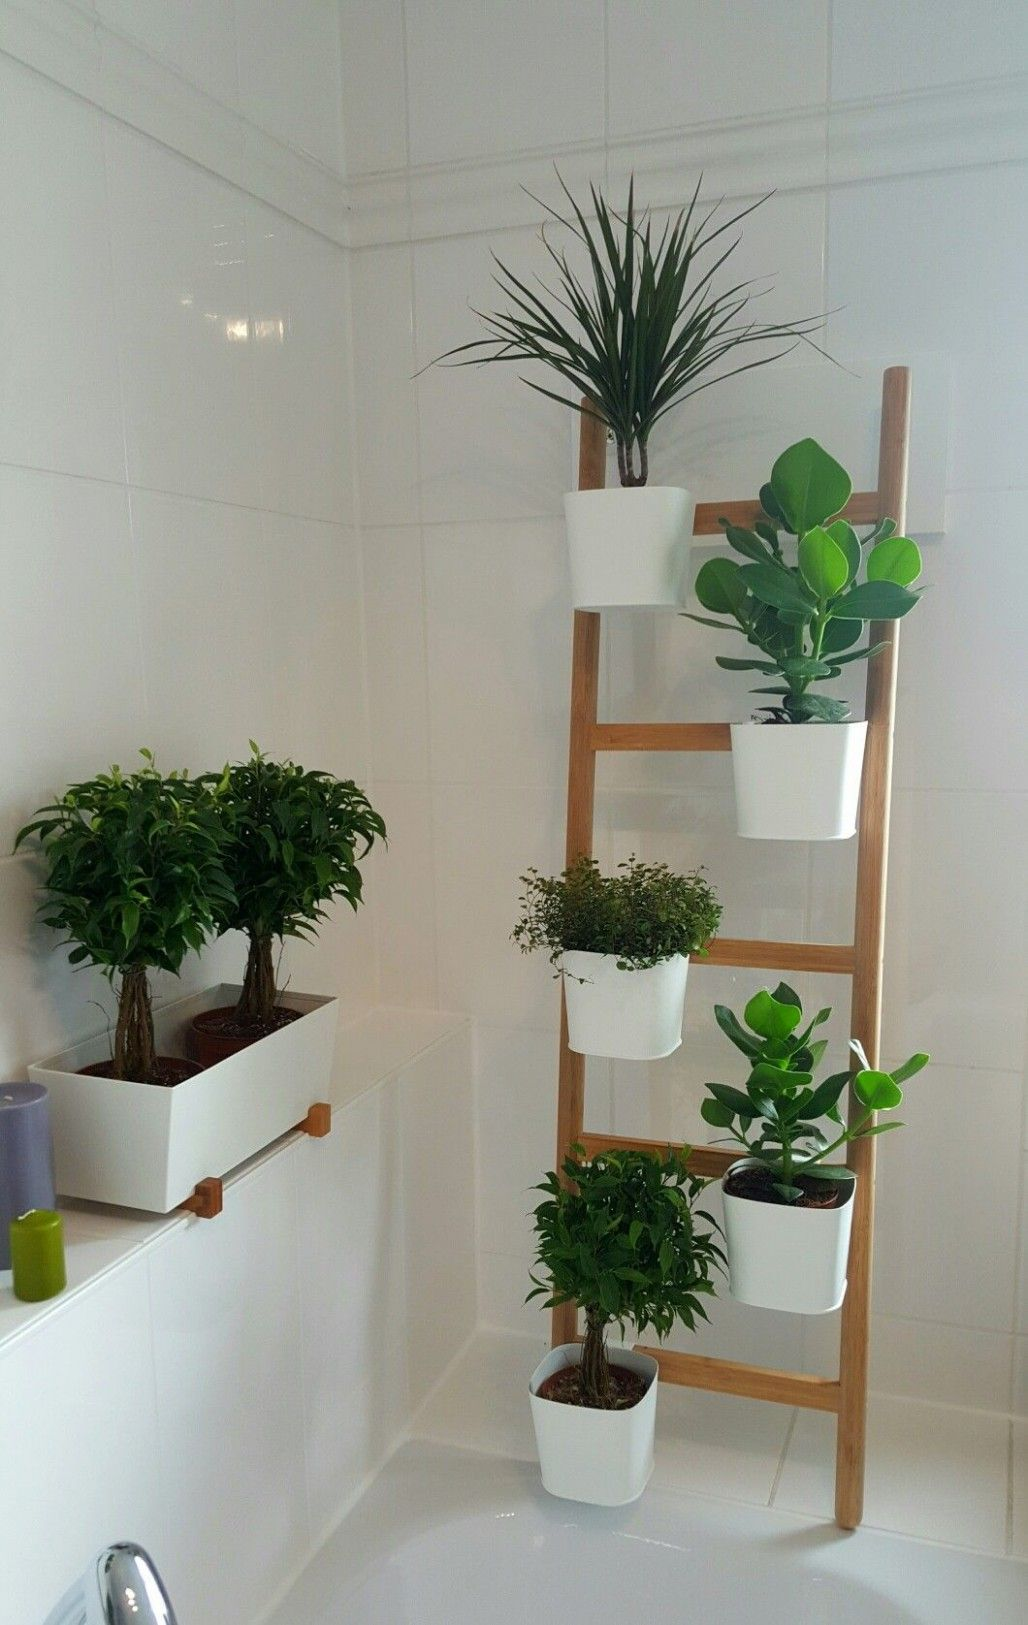 Ikea Garden Decorations in 2020 | Plant wall decor, Plant ...